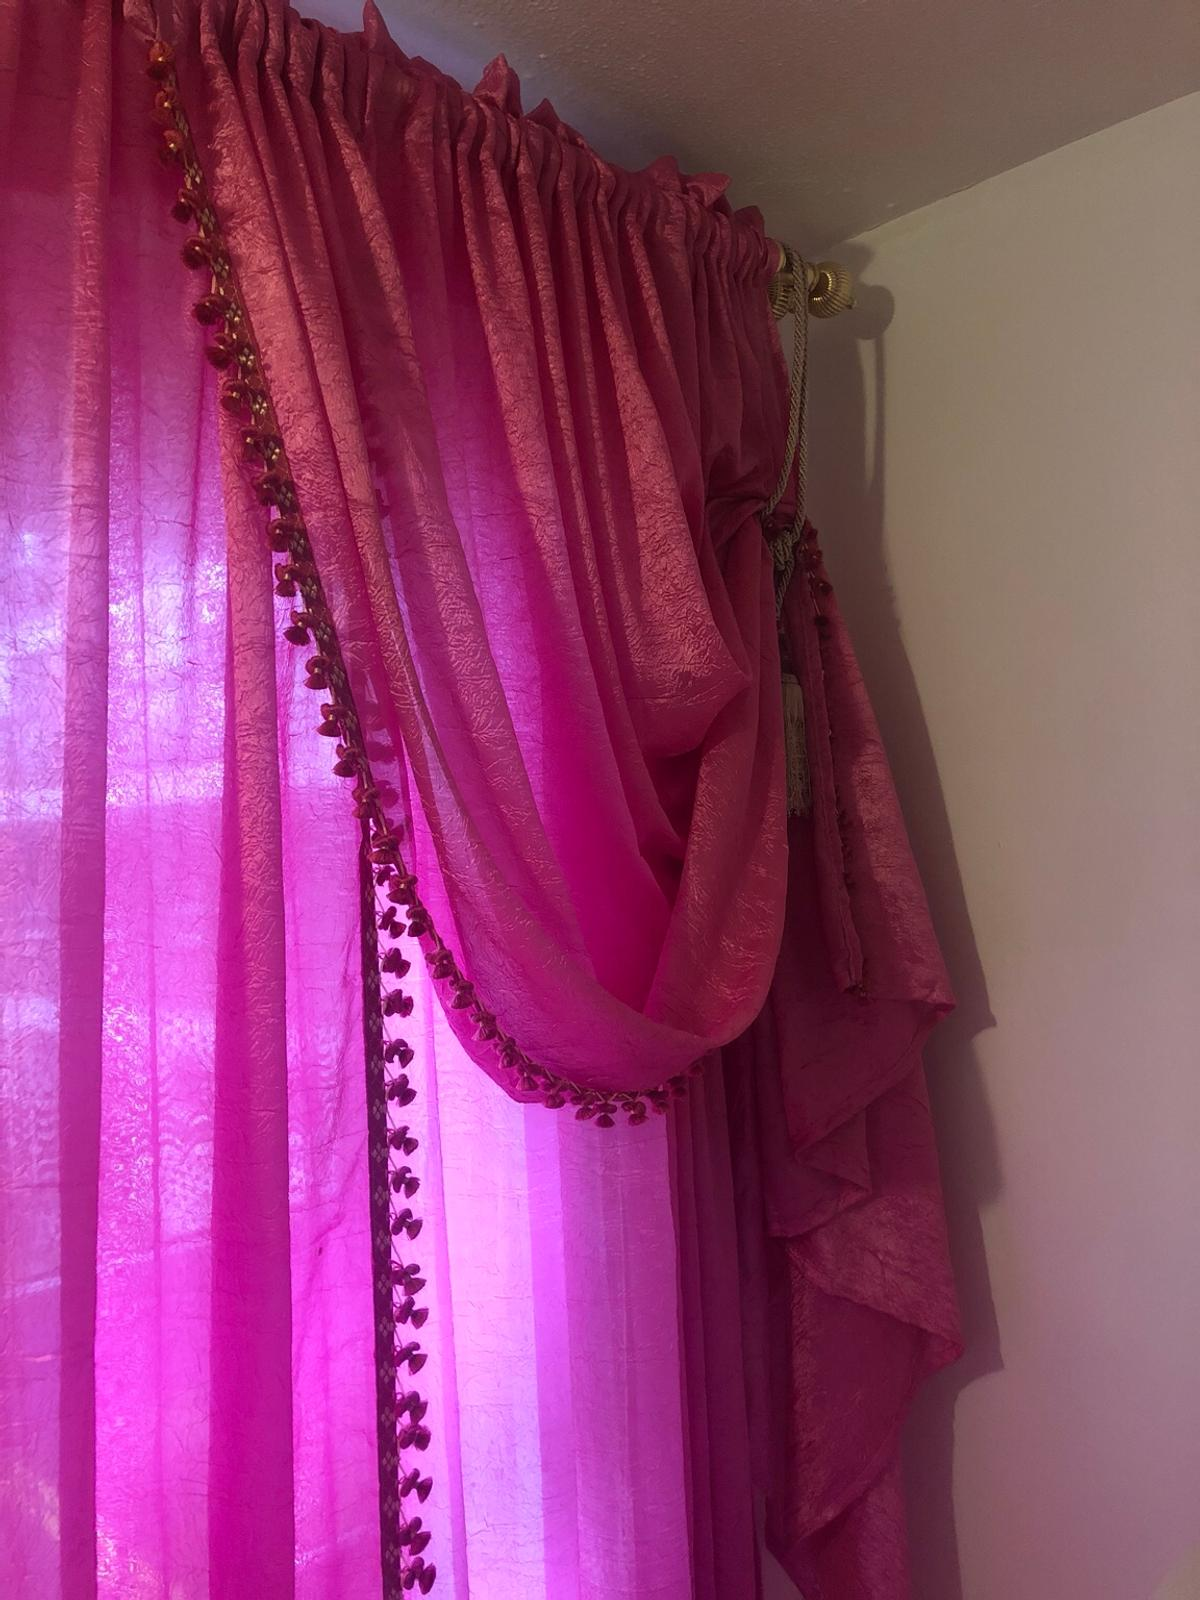 PINK 2 sets available for 2 windows £40 for both